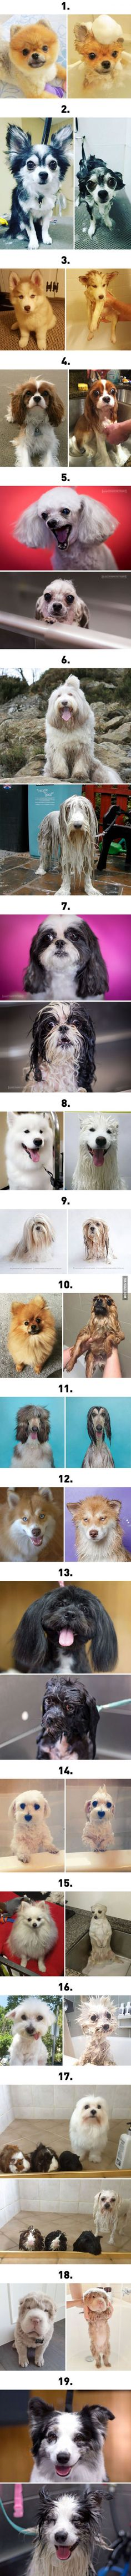 19 Dogs Before And After Bath Time